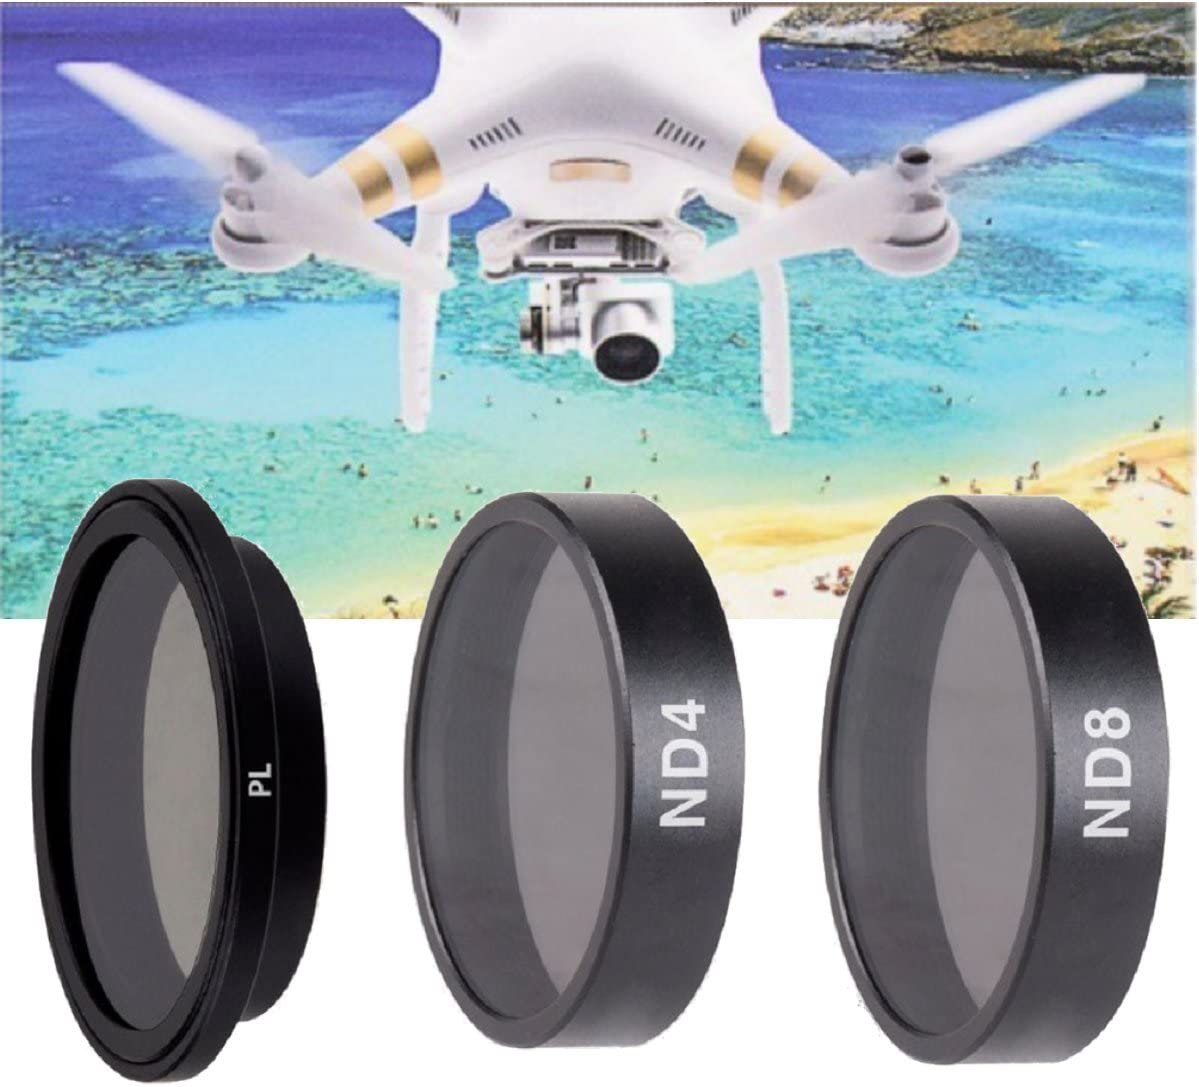 LENSKINS 3 Pack ND4-CPL//ND8-CPL//ND16-CPL Filter Kits Compatible DJI Multi-Resistant Coated with Lens Cloth AGC Optics Replacement for DJI Phantom 4//Phantom 3 Professional//Phantom 3 Advanced Filter